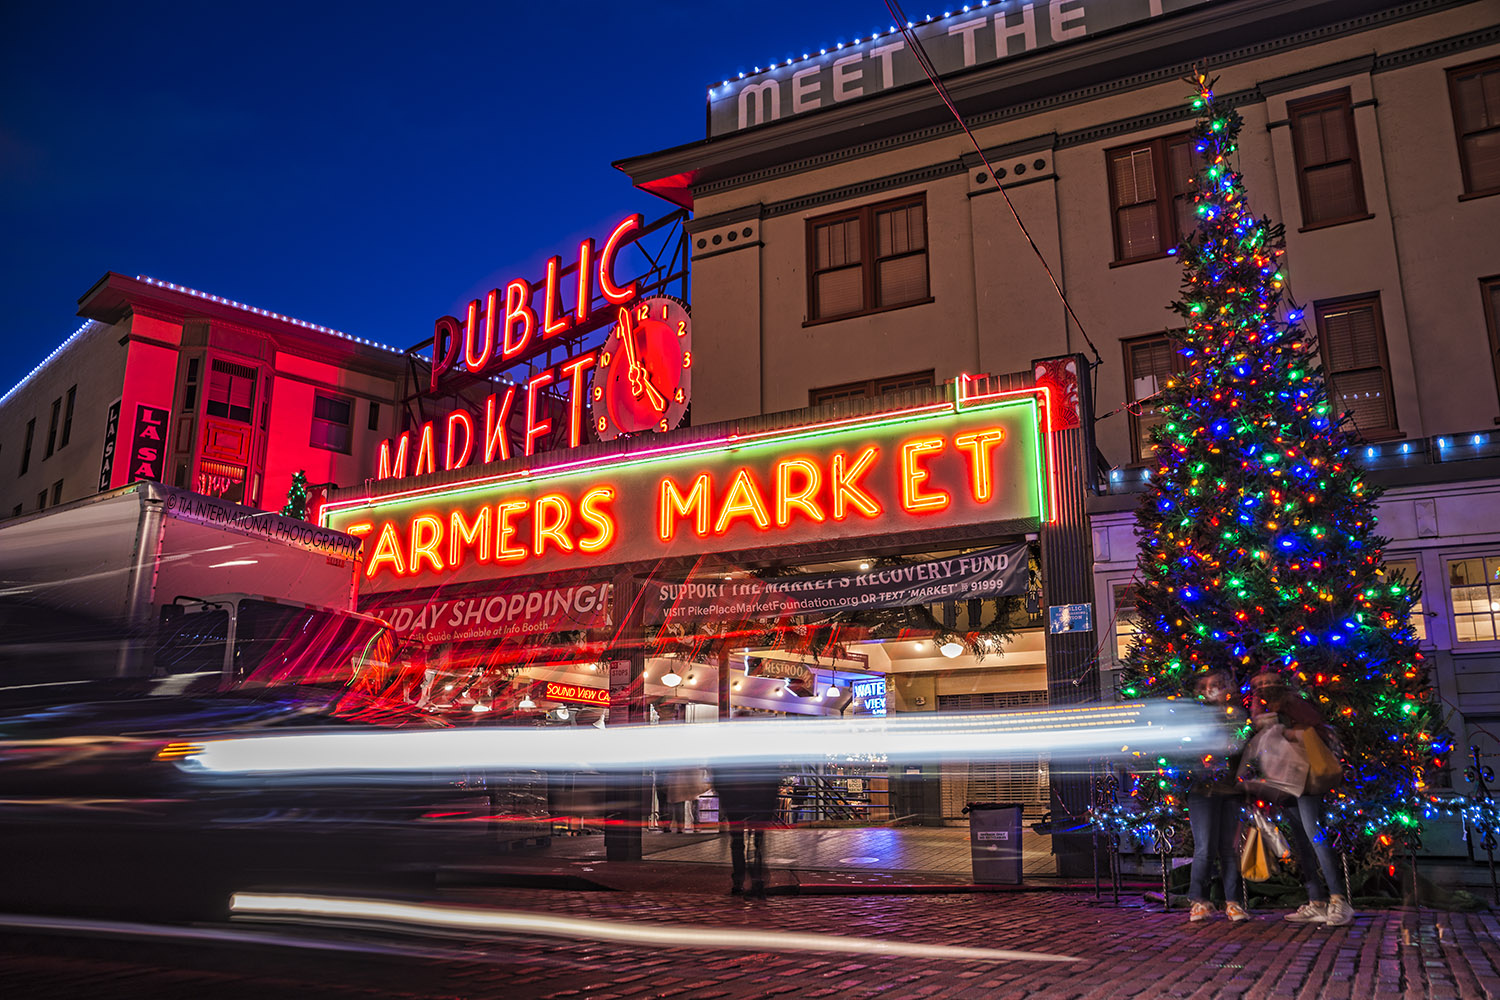 Pike Place Market, Downtown Seattle. (December 17, 2020).